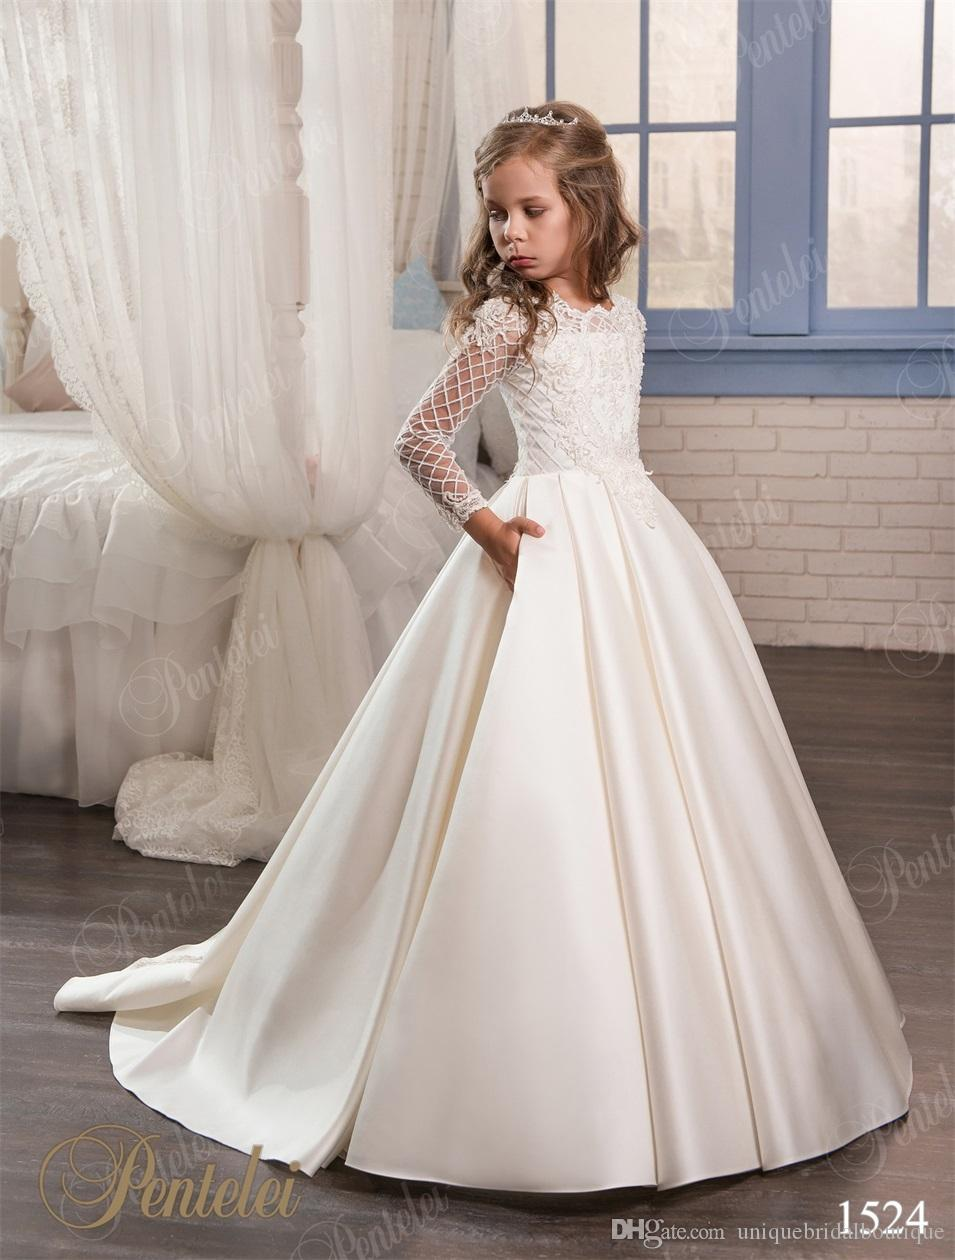 Wedding Dresses For Little Girls 2017 Pentelei Cheap With Long ...